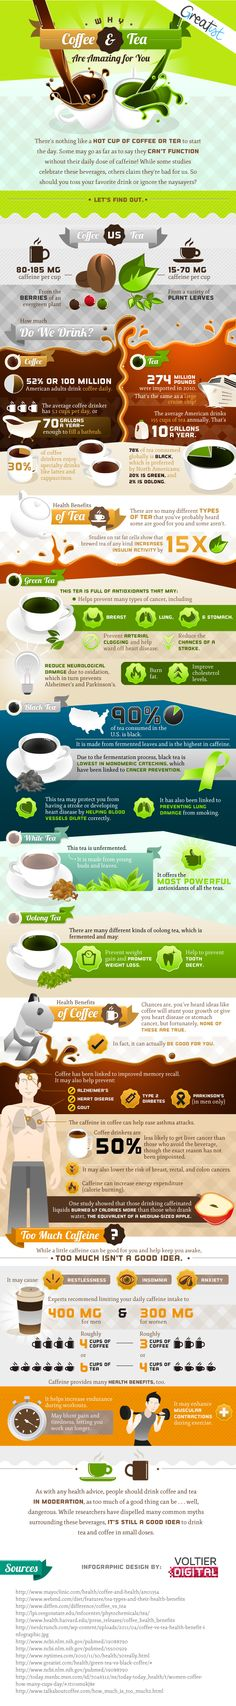 Informative Coffee and Tea info